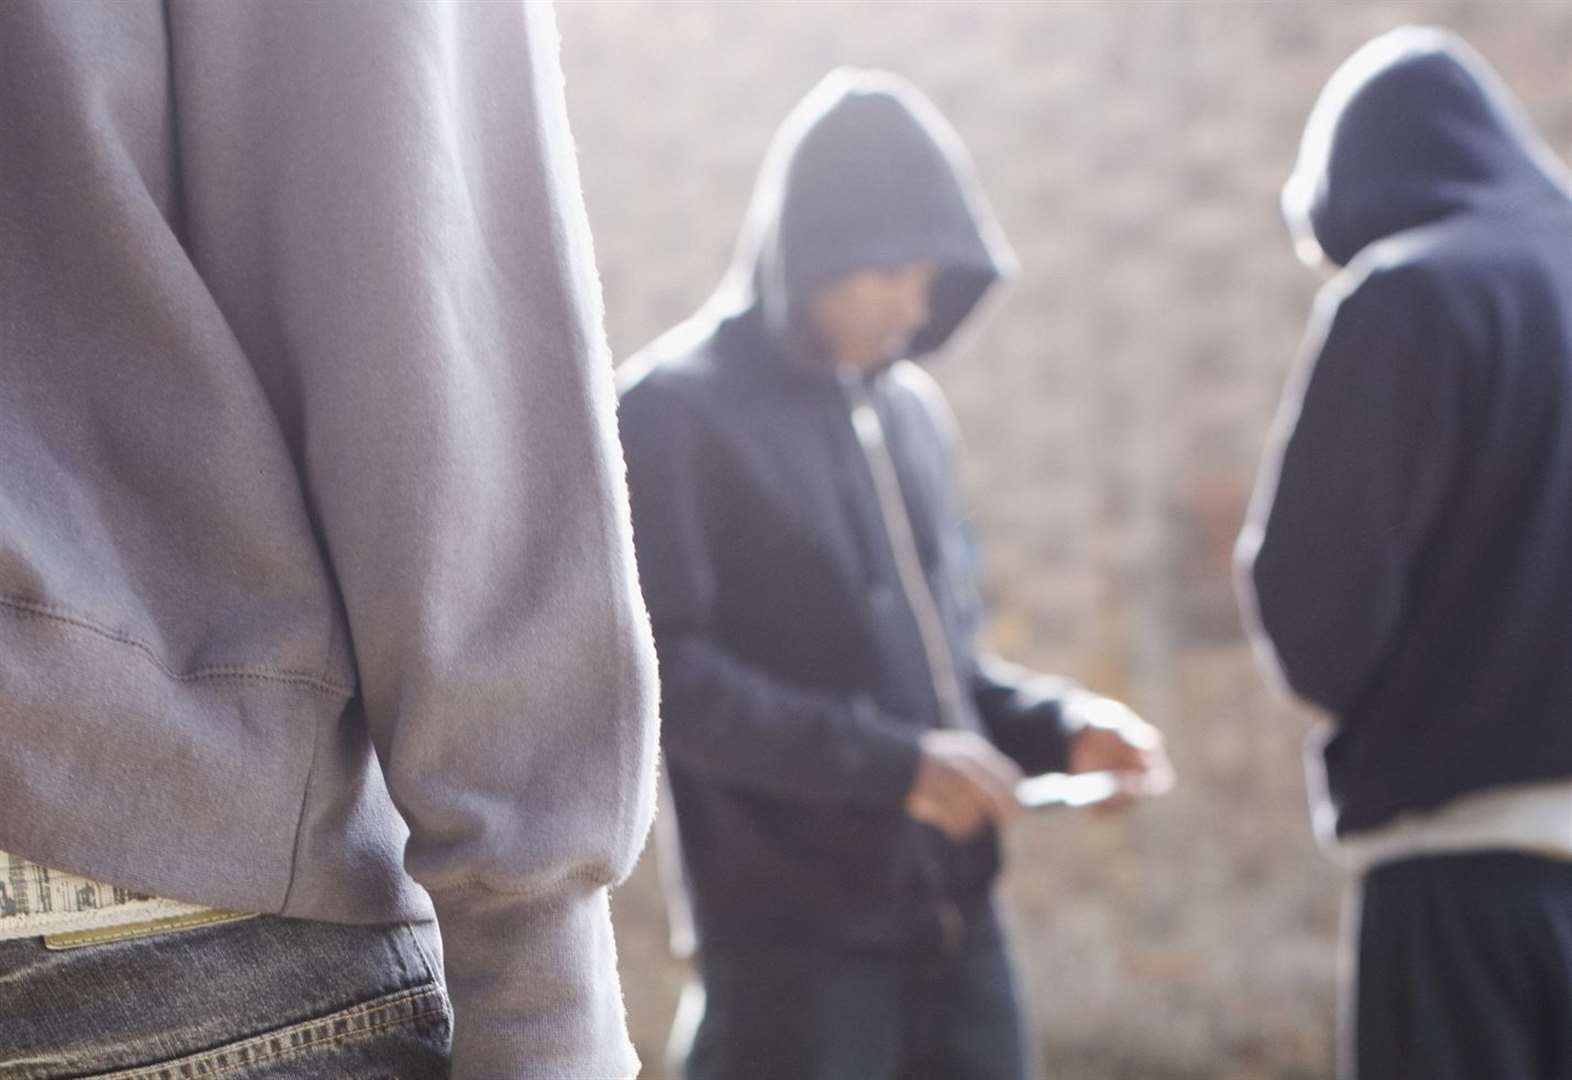 There are between 17 to 25 County Line drug gangs in western Suffolk, council report says